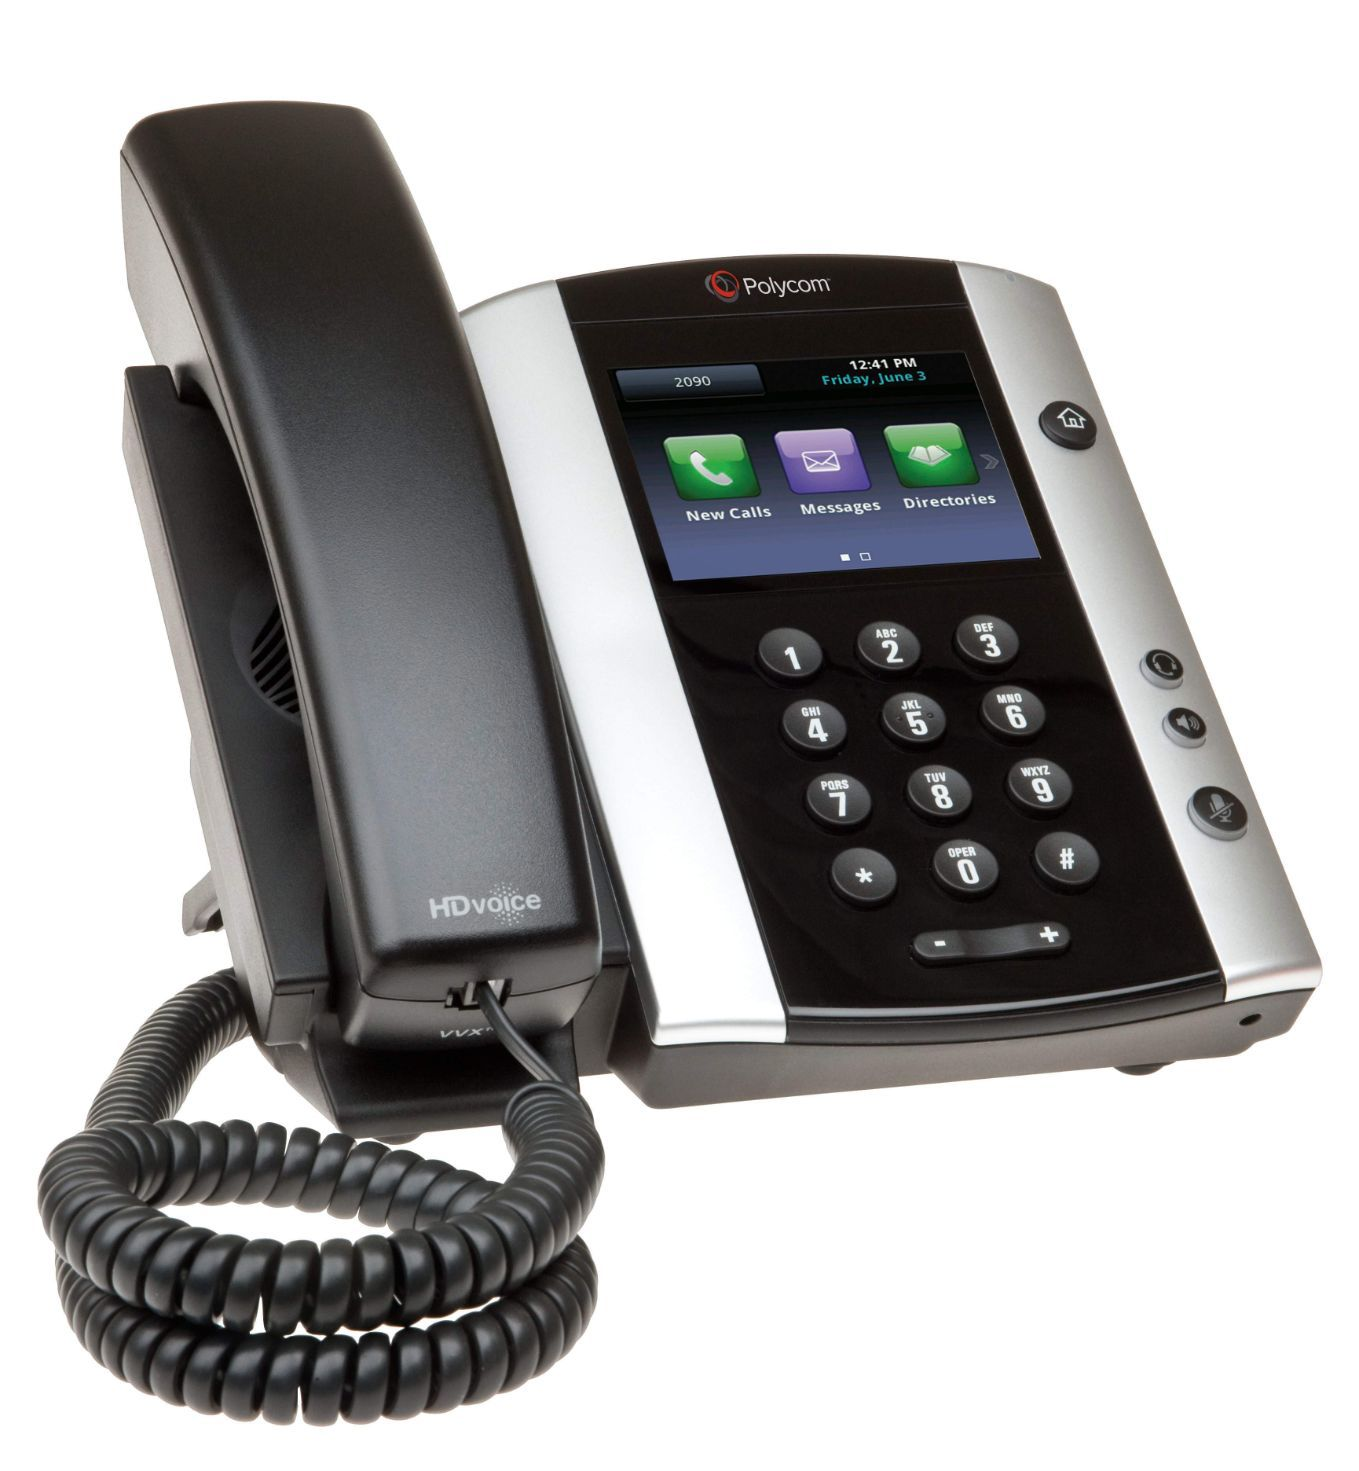 Polycomm Phones, VoIP, Voice Over IP, Internet Phone, Cheap Phone Service